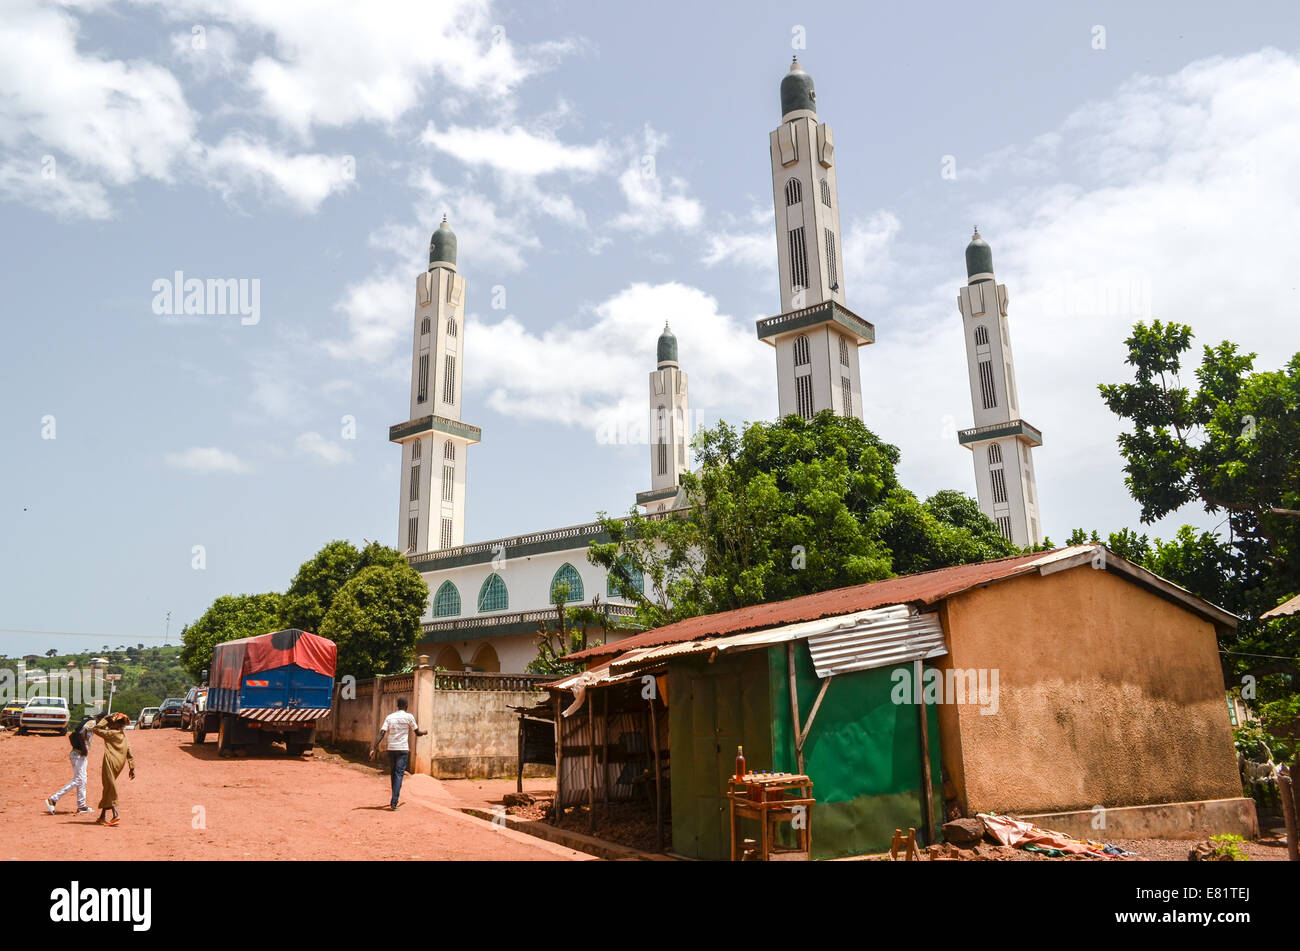 Mosque of Dalaba, region of the Fouta, Guinea - Stock Image